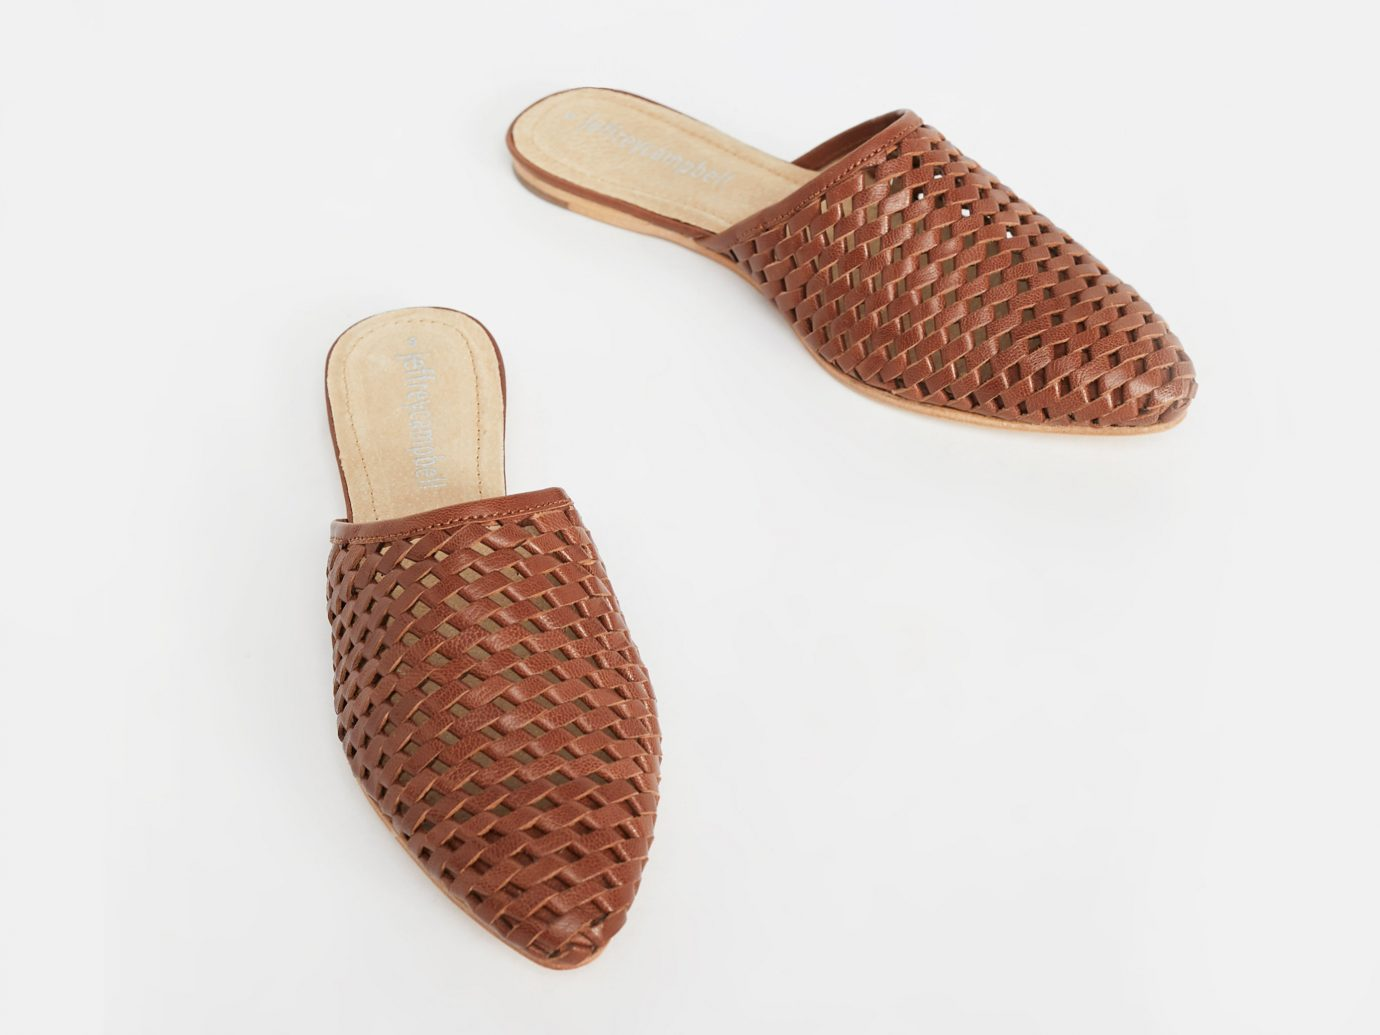 Style + Design footwear brown shoe slipper accessory outdoor shoe product design sandal